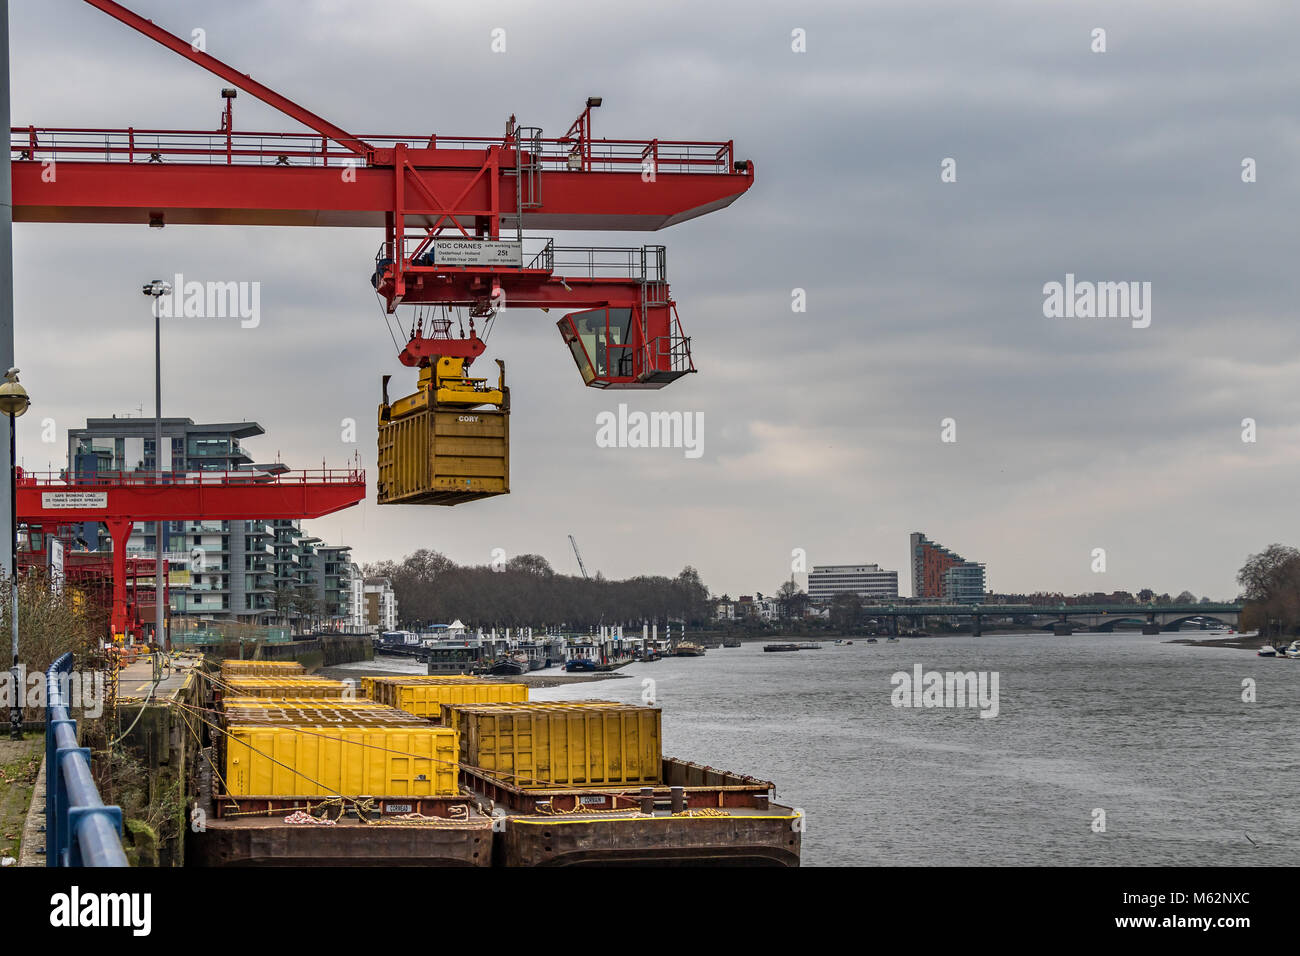 A container handling crane at Western Riverside Waster Authority near Wandsworth Bridge, places a container of domestic - Stock Image